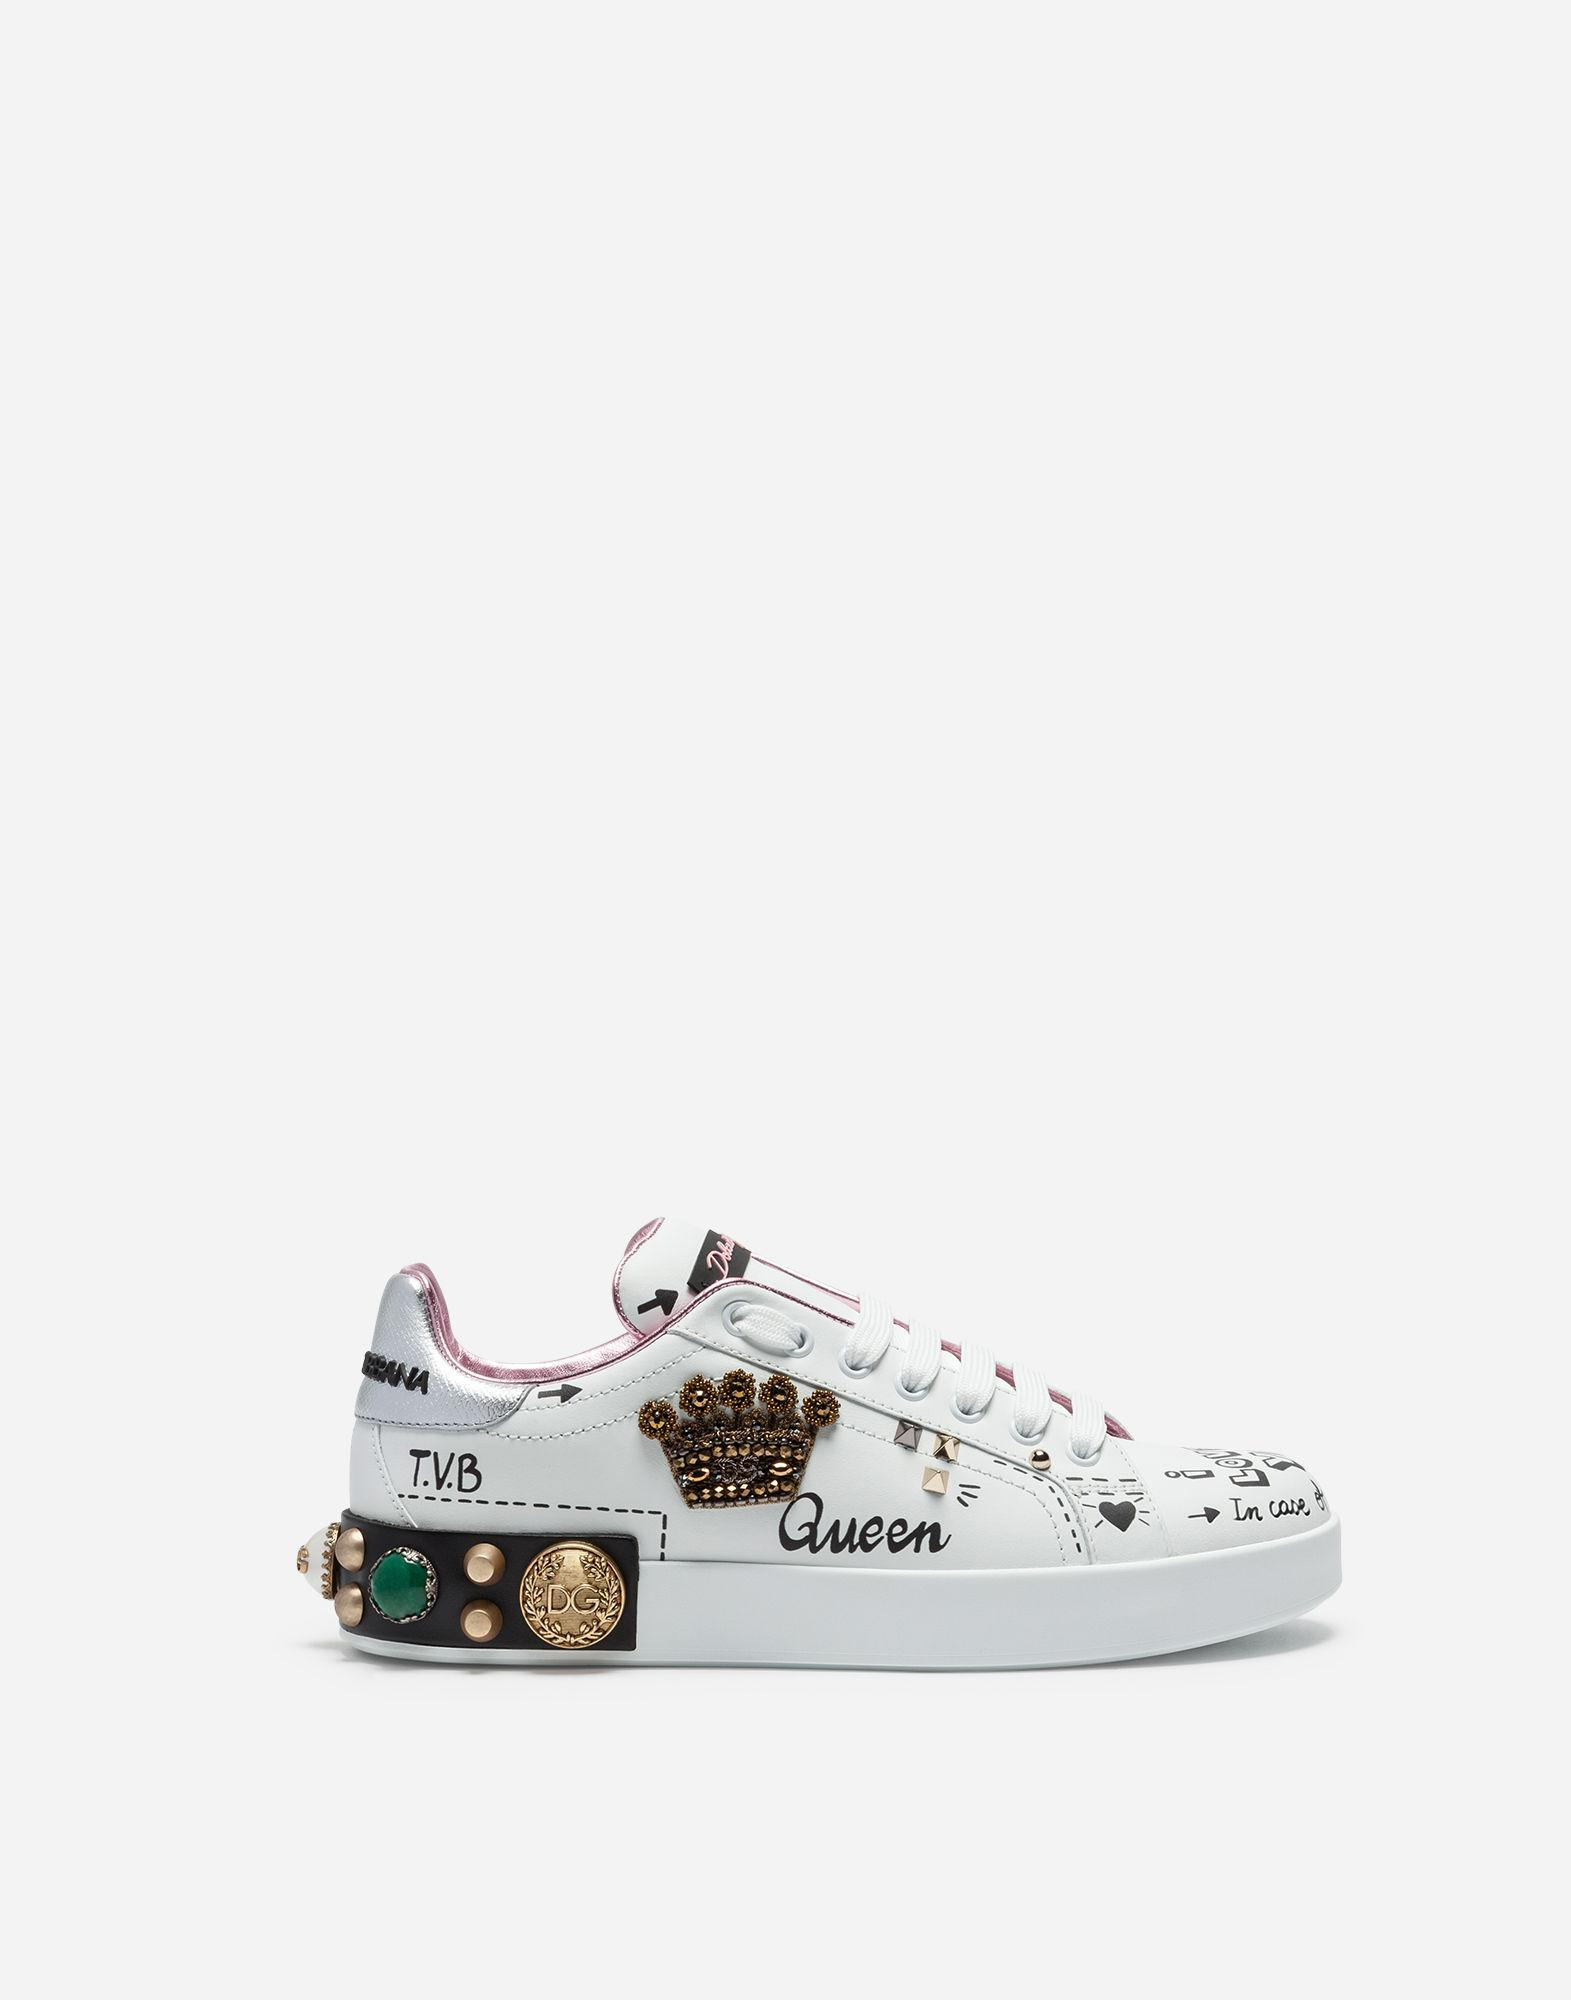 271b2fe0645 Dolce & Gabbana - White Printed Calfskin Portofino Sneakers With Patch And  Embroidery - Lyst. View fullscreen